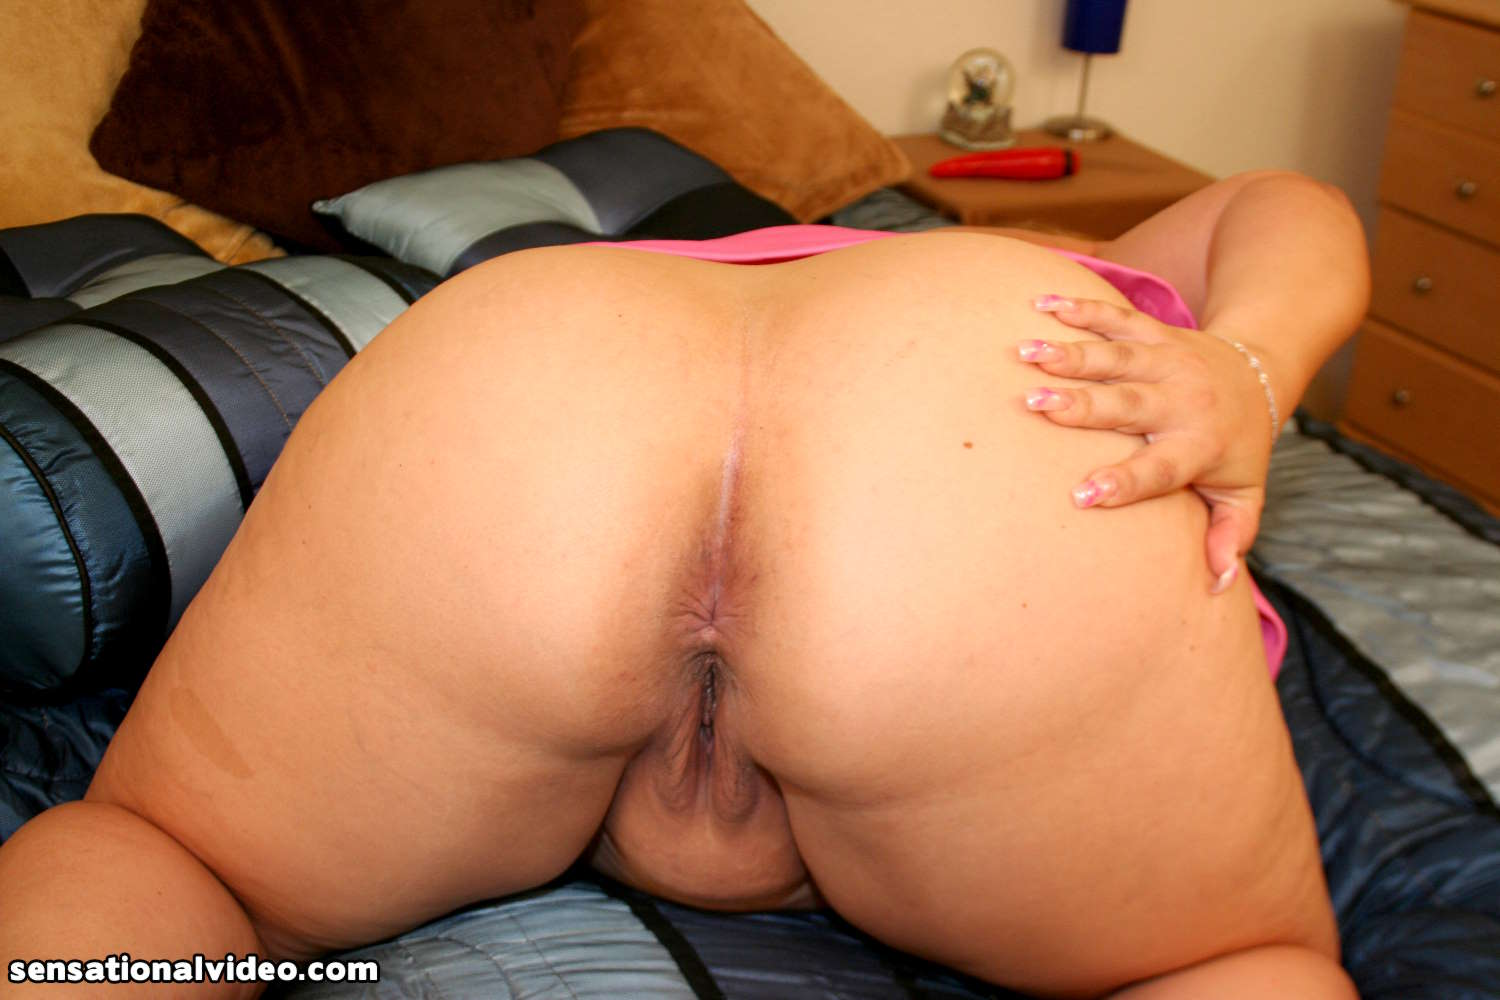 Lesbian domination fat on skinny